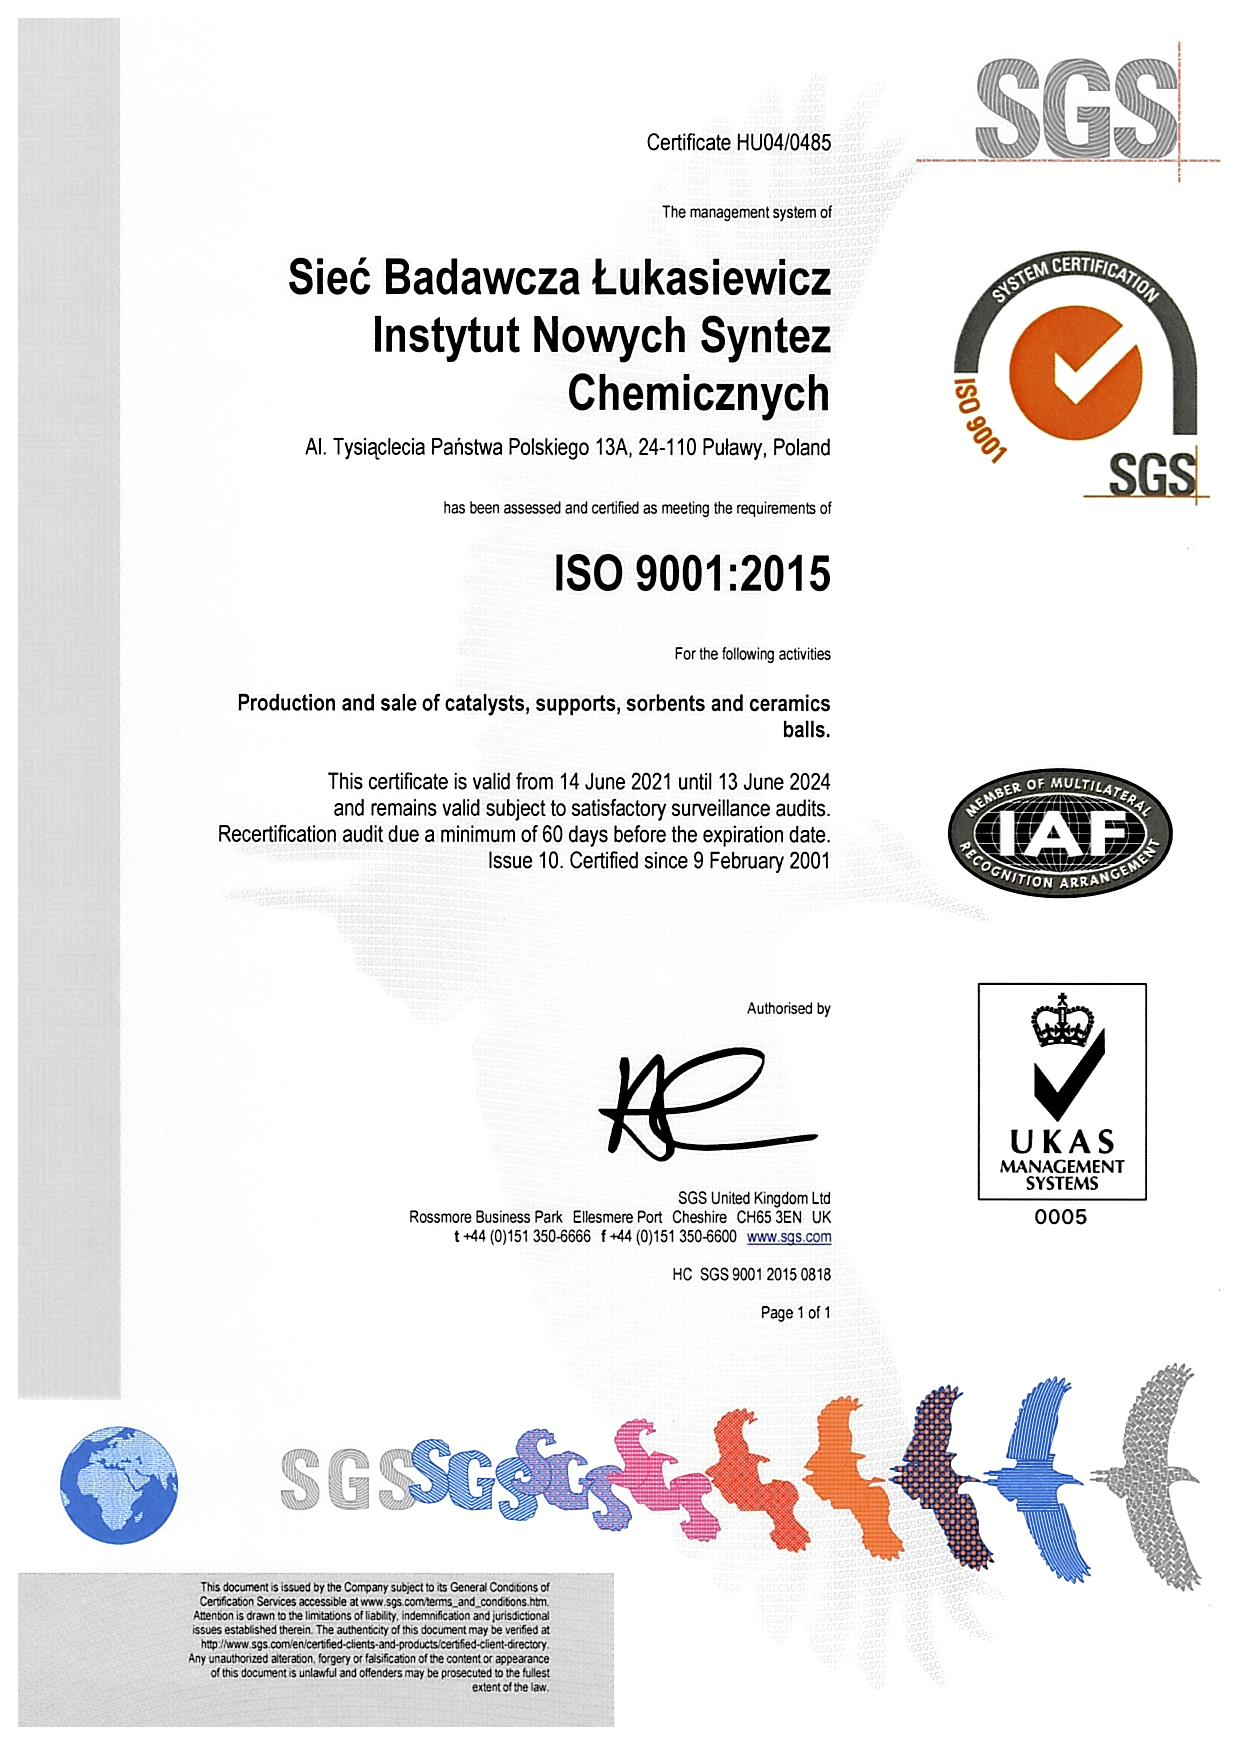 ISO 9001:2015 - Production and sale of catalysts, supports, sorbents and ceramics balls